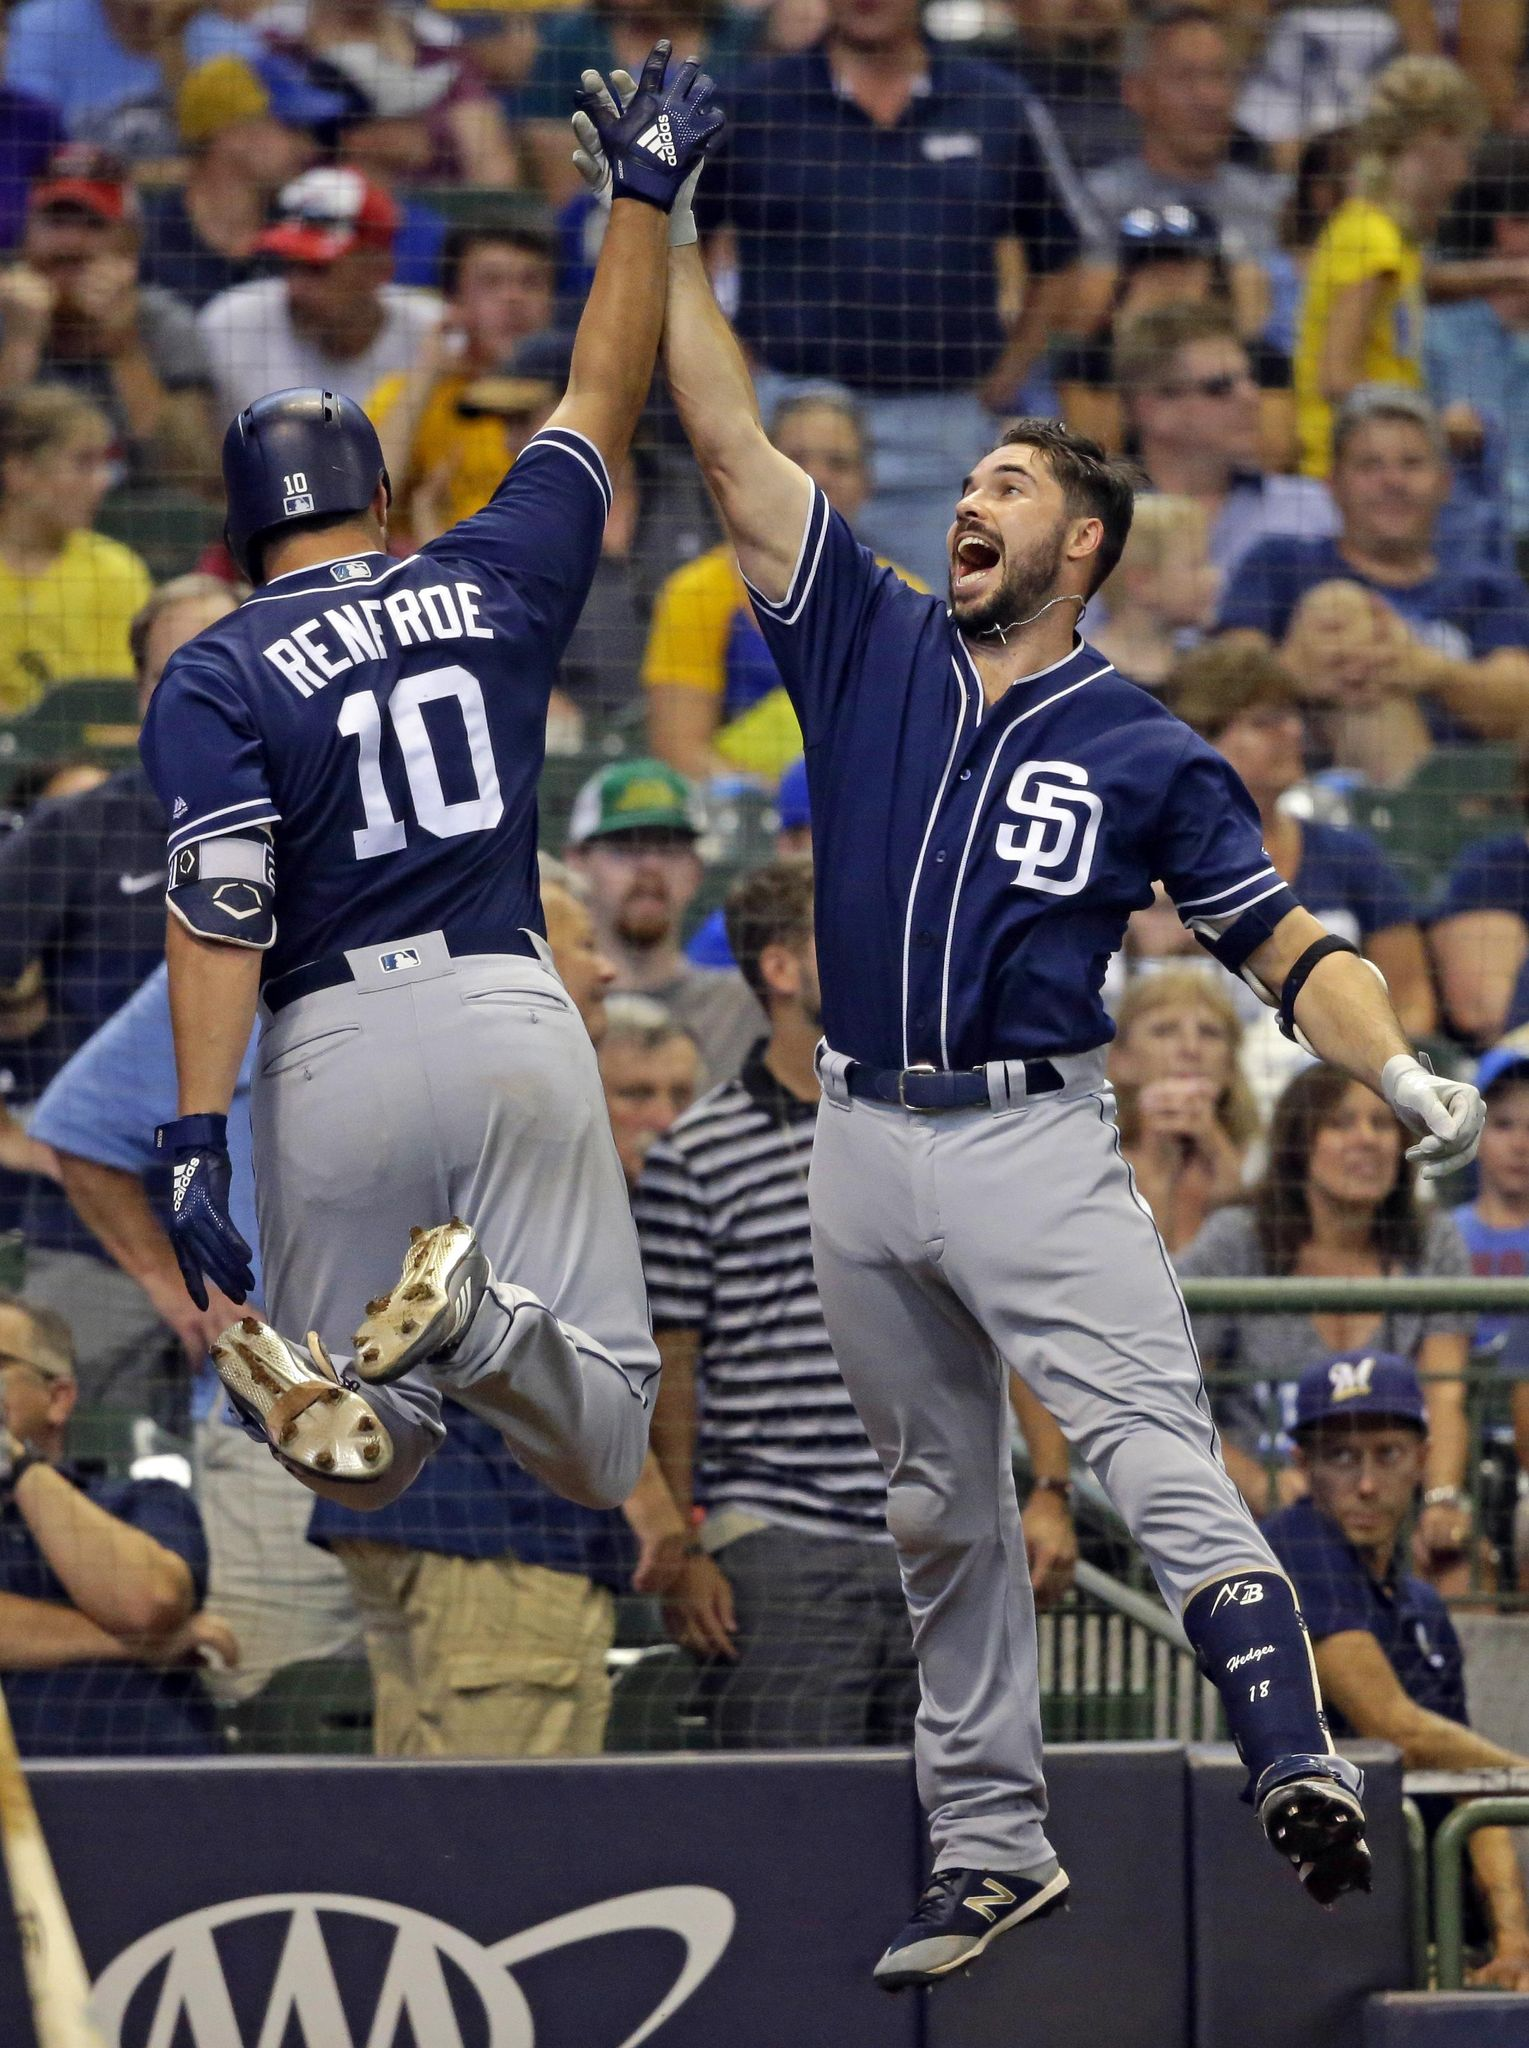 Hunter Renfroe homers in 4th straight game as Padres win